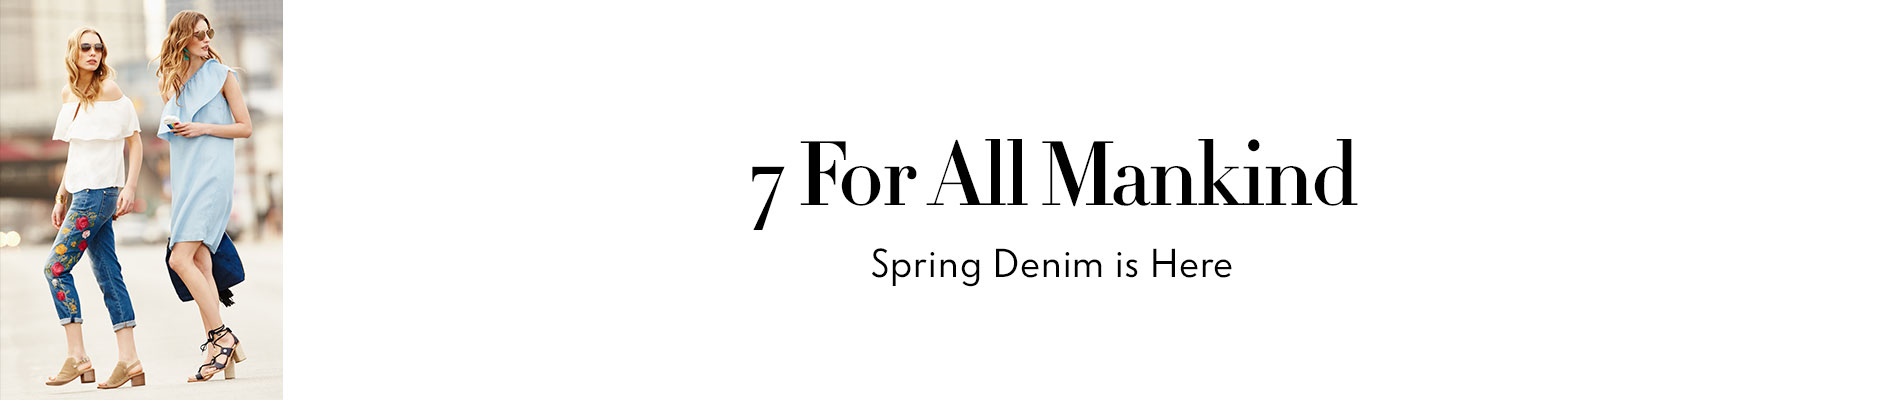 7 for all mankind - spring denim is here